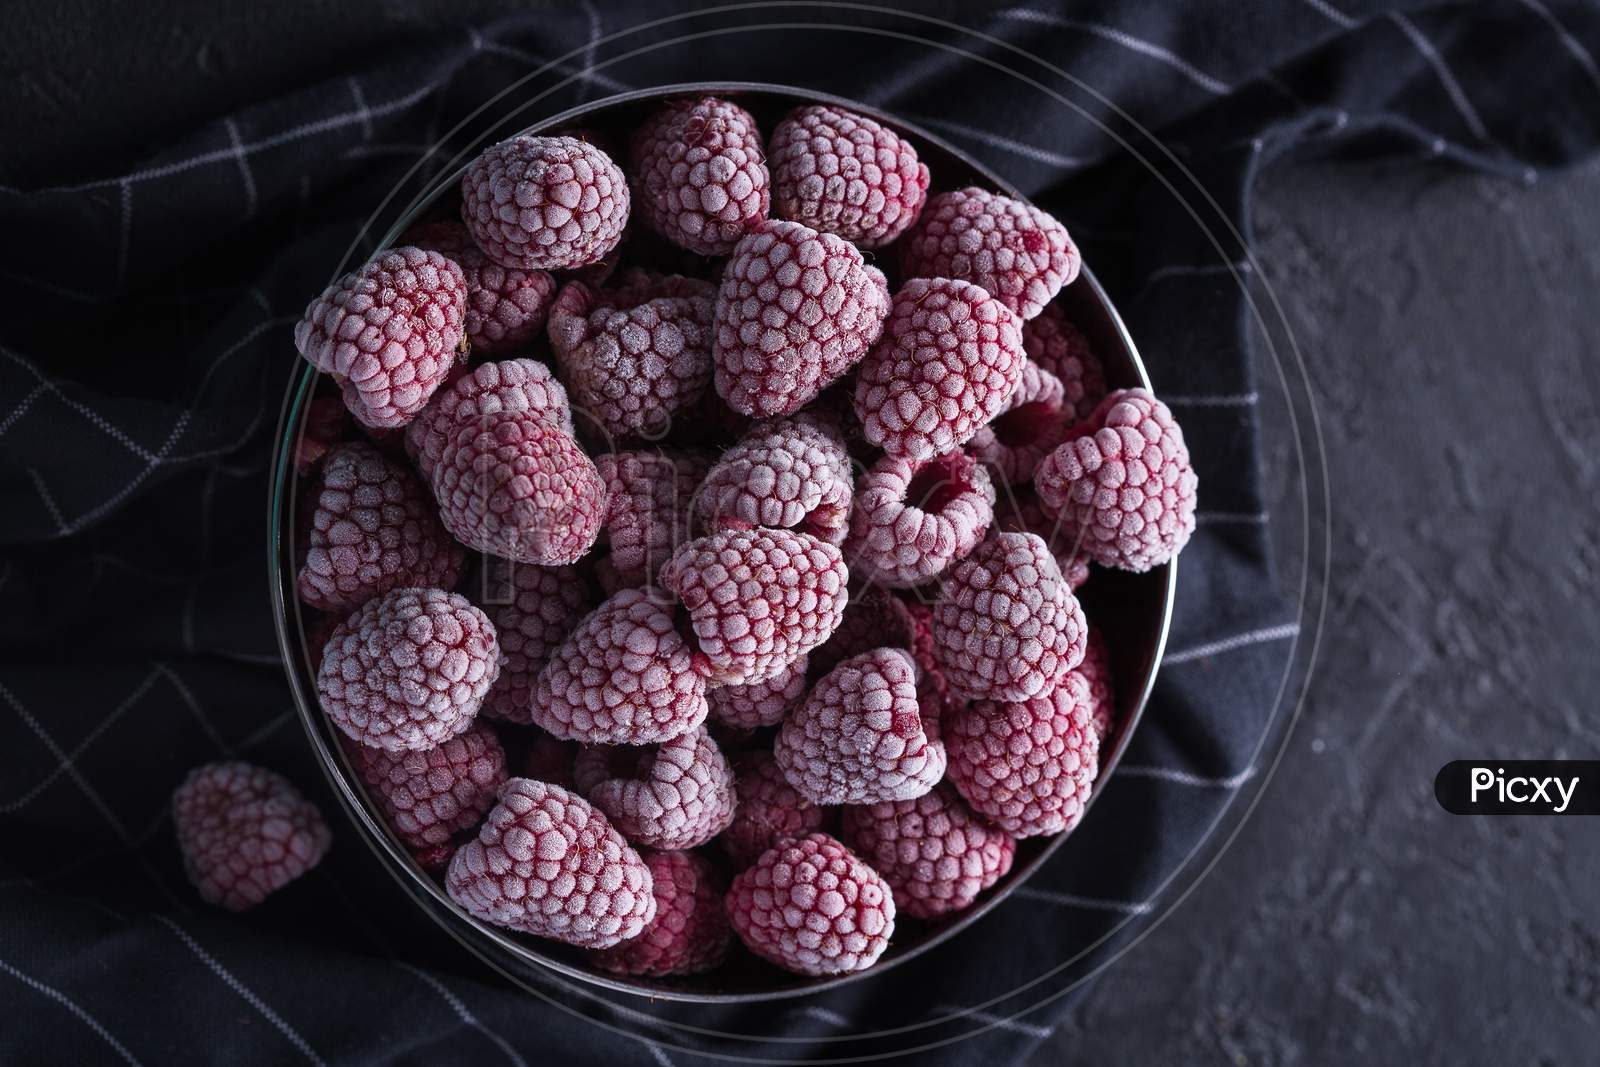 Collection / Group Of Healthy Frozen Raspberry